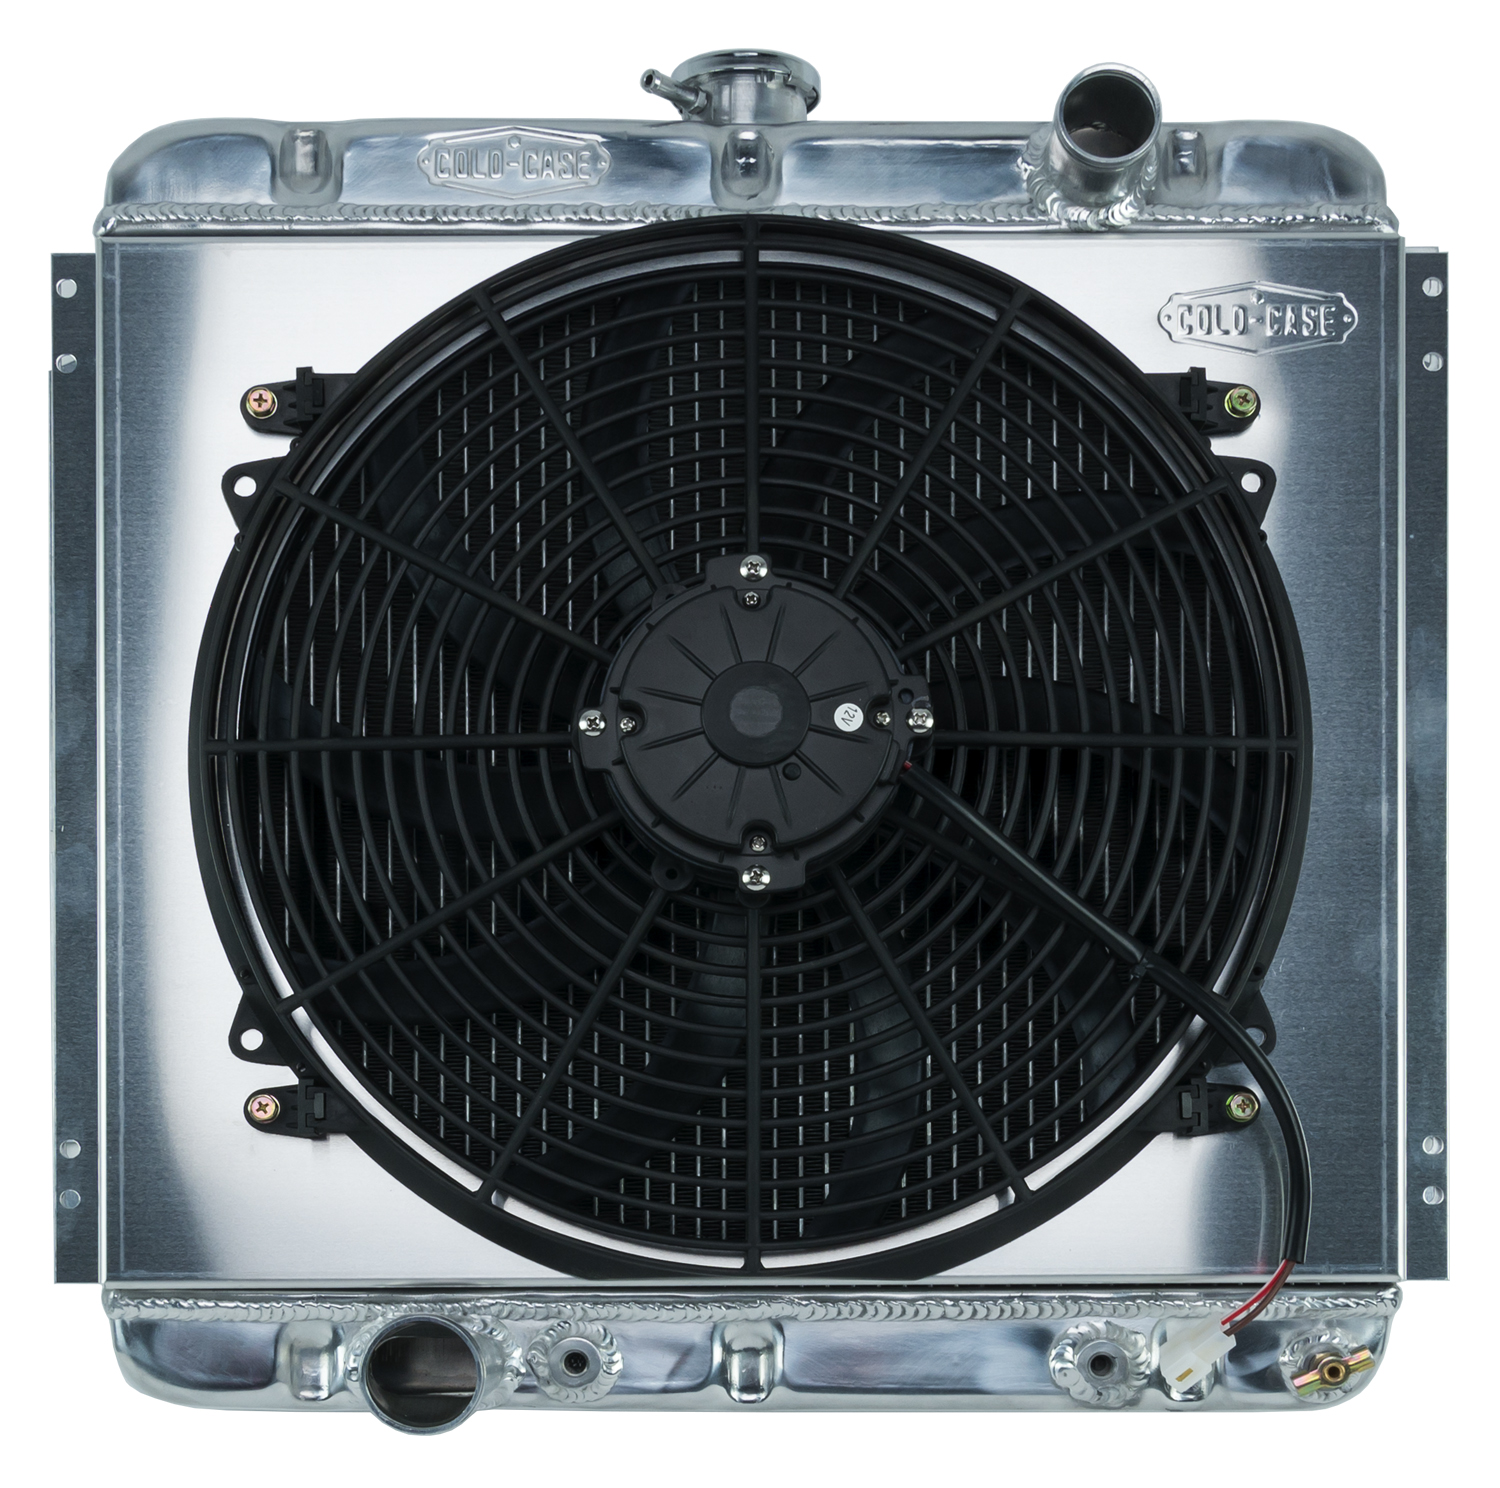 **Discontinued**67-70 Mustang 20 Inch Aluminum Performance Radiator And 16 Inch Fan Kit AT Cold Case Radiators - FOM560ATFK